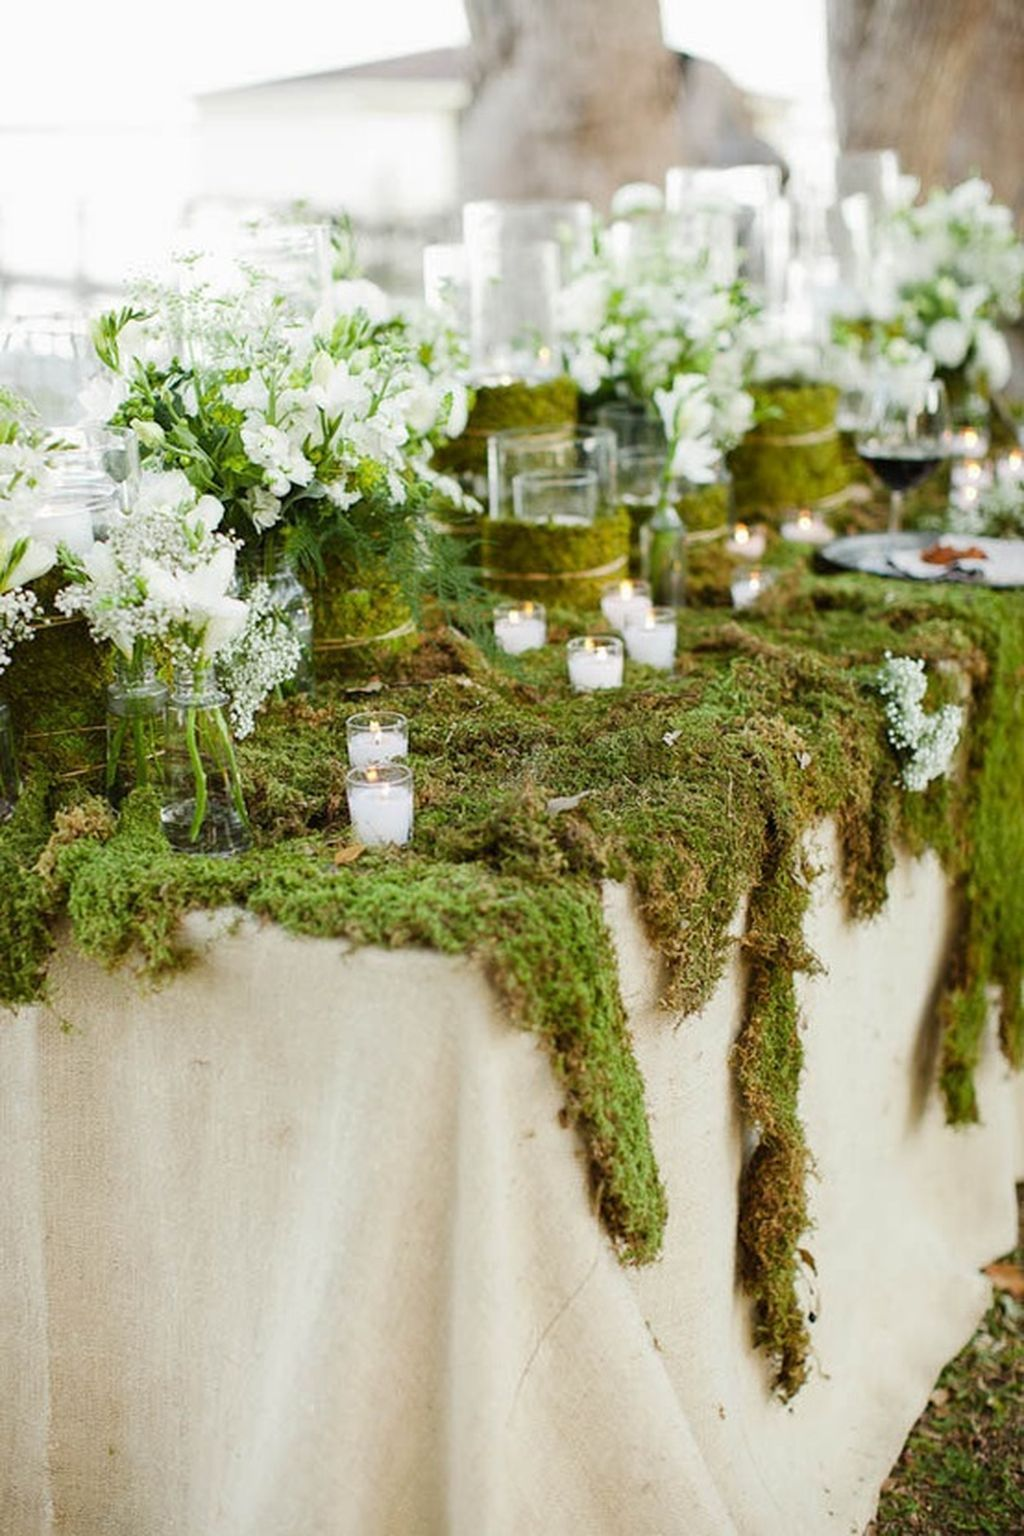 Wedding decoration ideas outside   Affordable and Romantic Outdoor Wedding Centerpieces Ideas